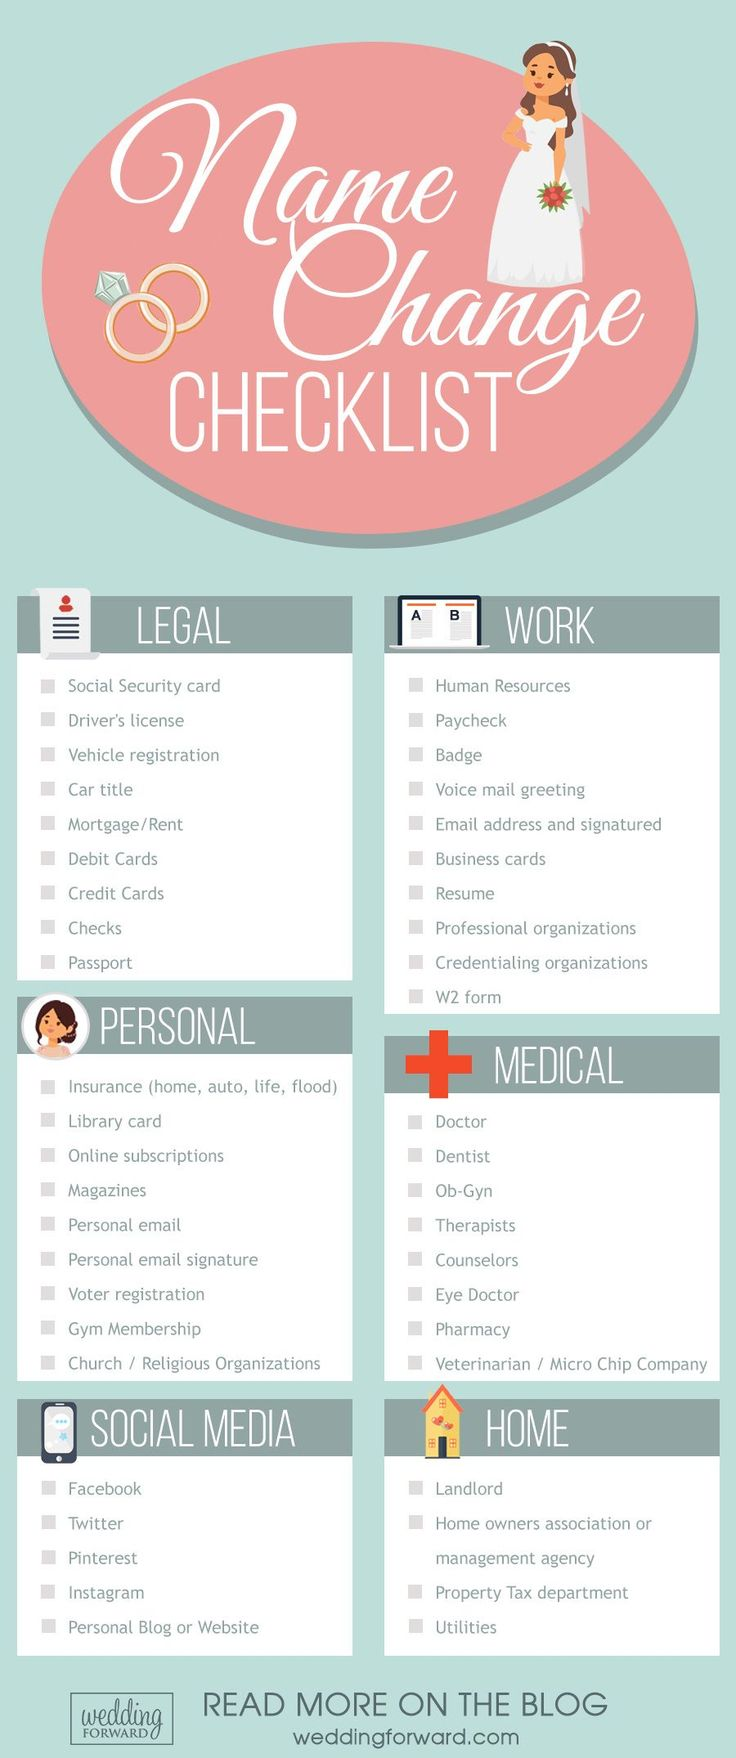 7 Wedding Planning Infographics: Useful Ideas & Tips ❤️ Checklist for changing your name after wedding. See more: http://www.weddingforward.com/wedding-planning-infographics/ #wedding #marriage #checklist